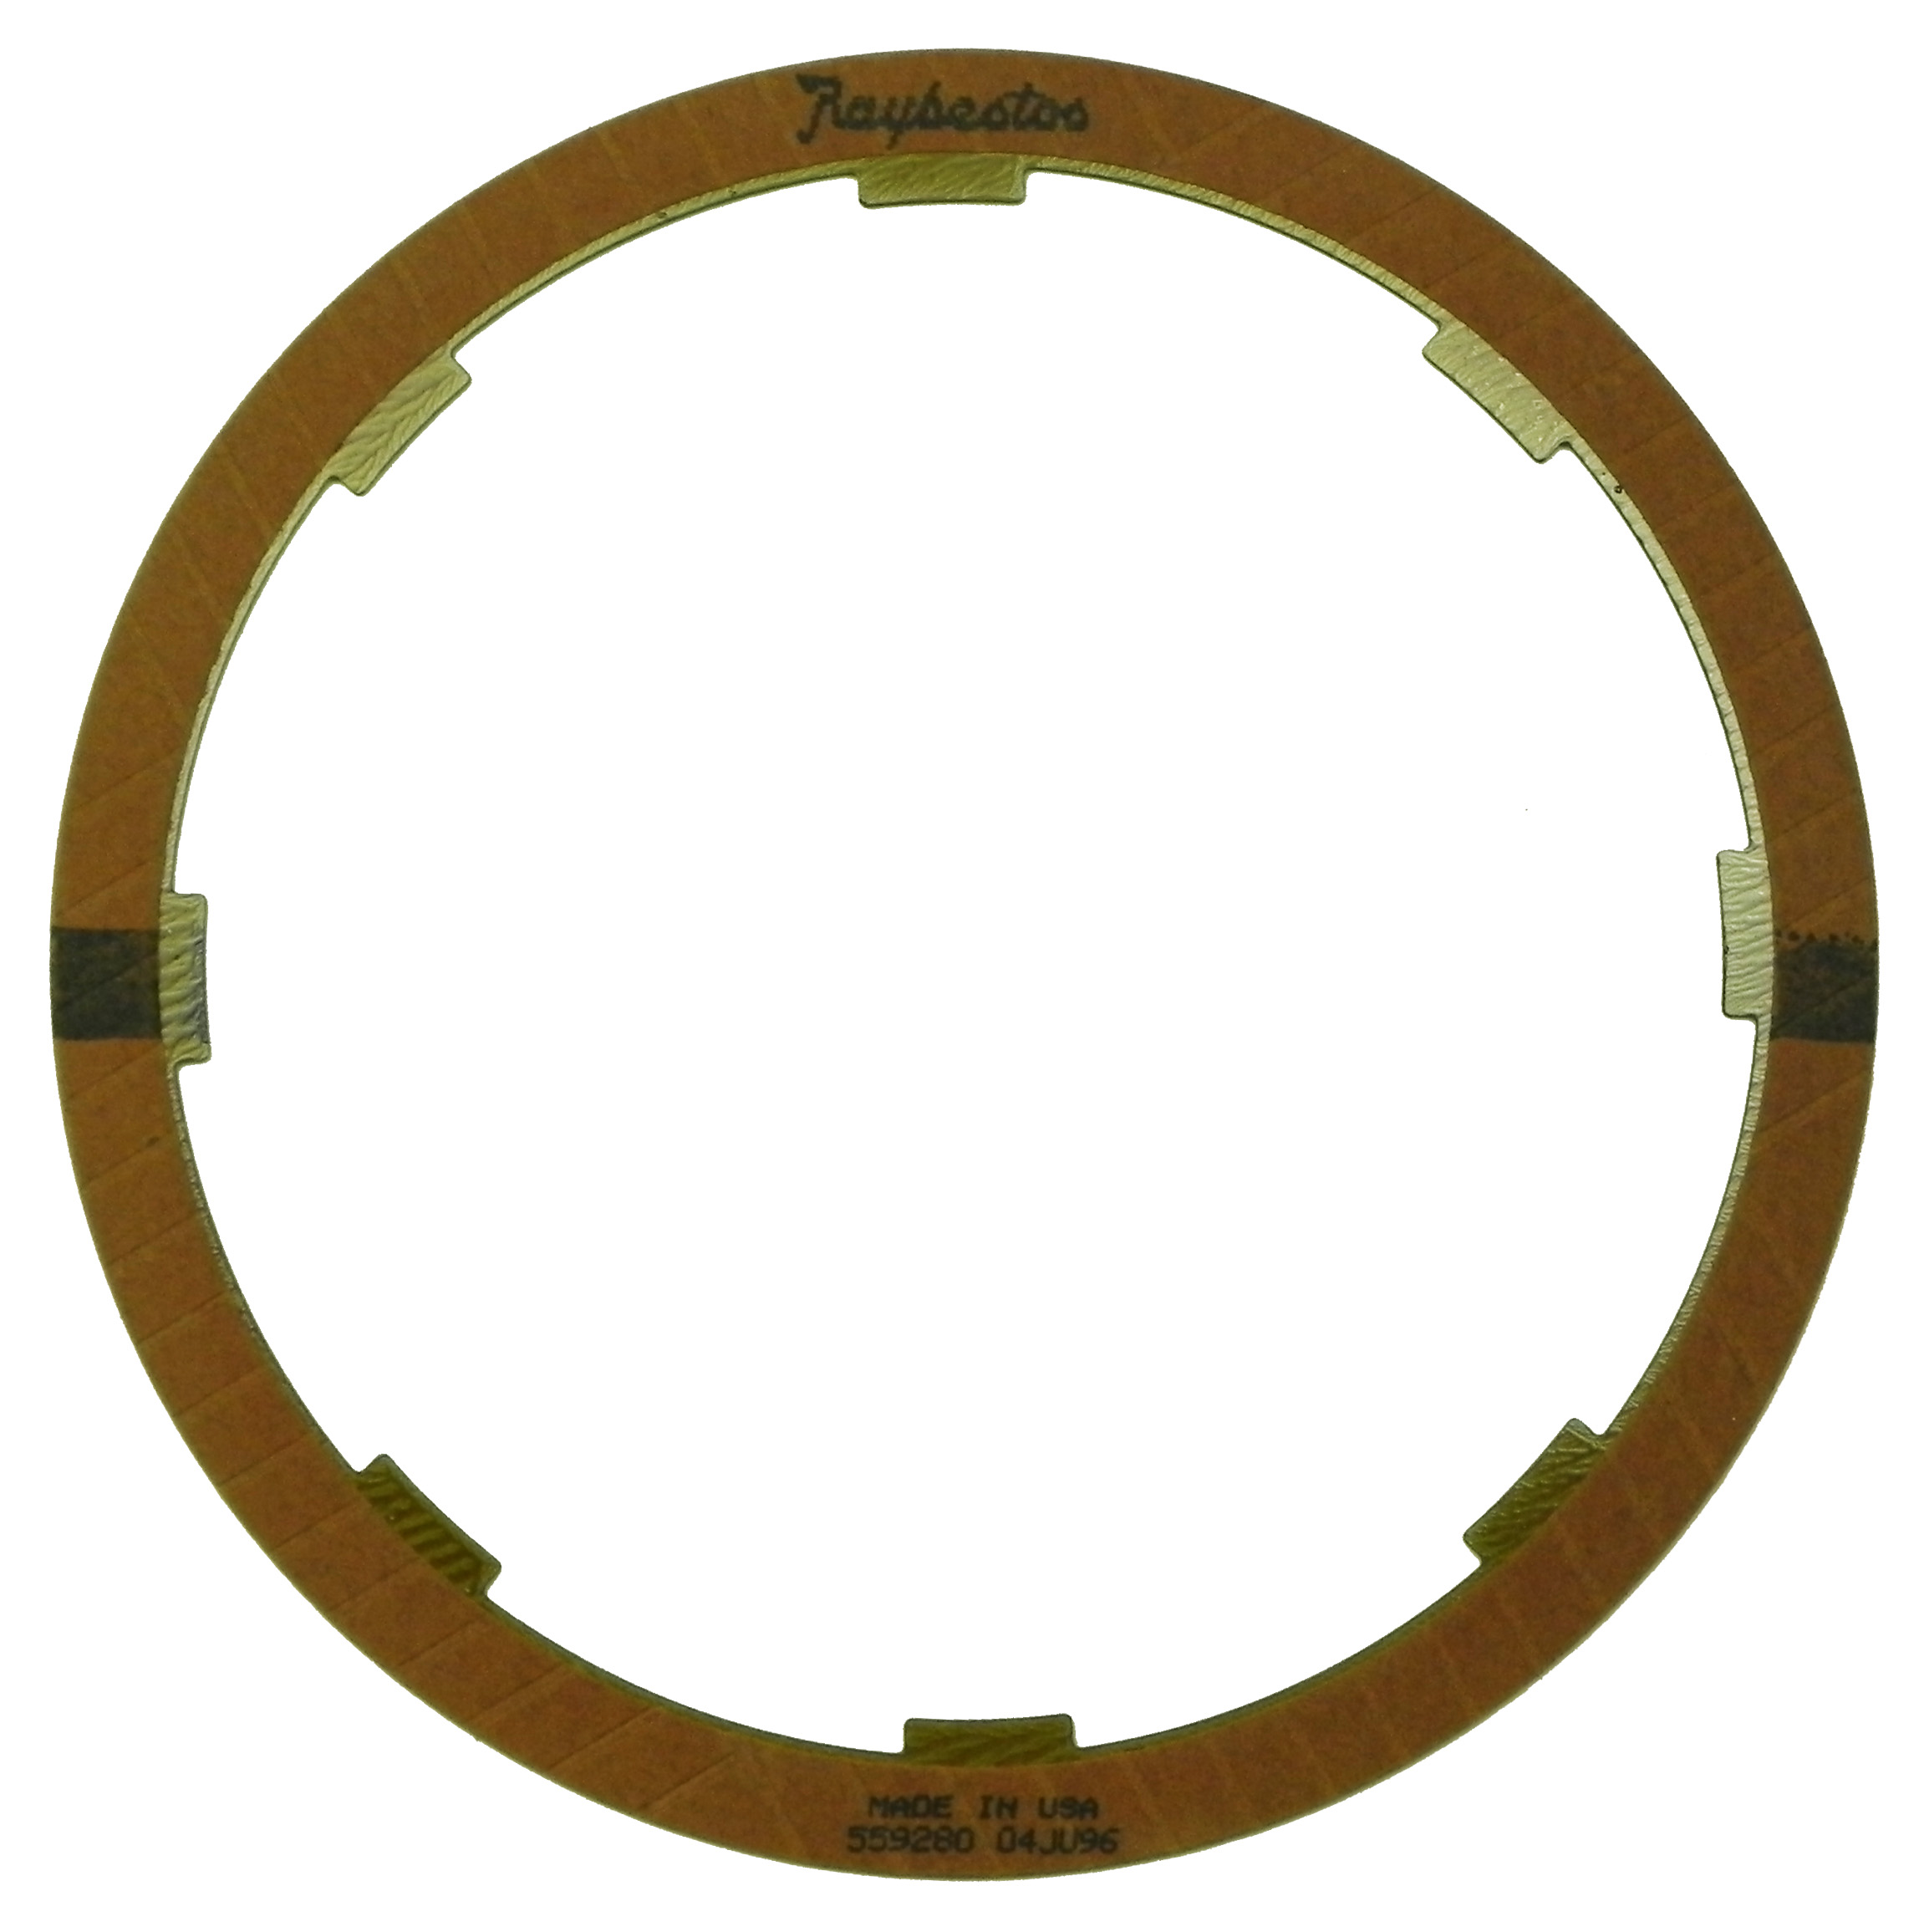 R559280 | 1983-1992 Friction Clutch Plate OE Replacement Forward, Direct